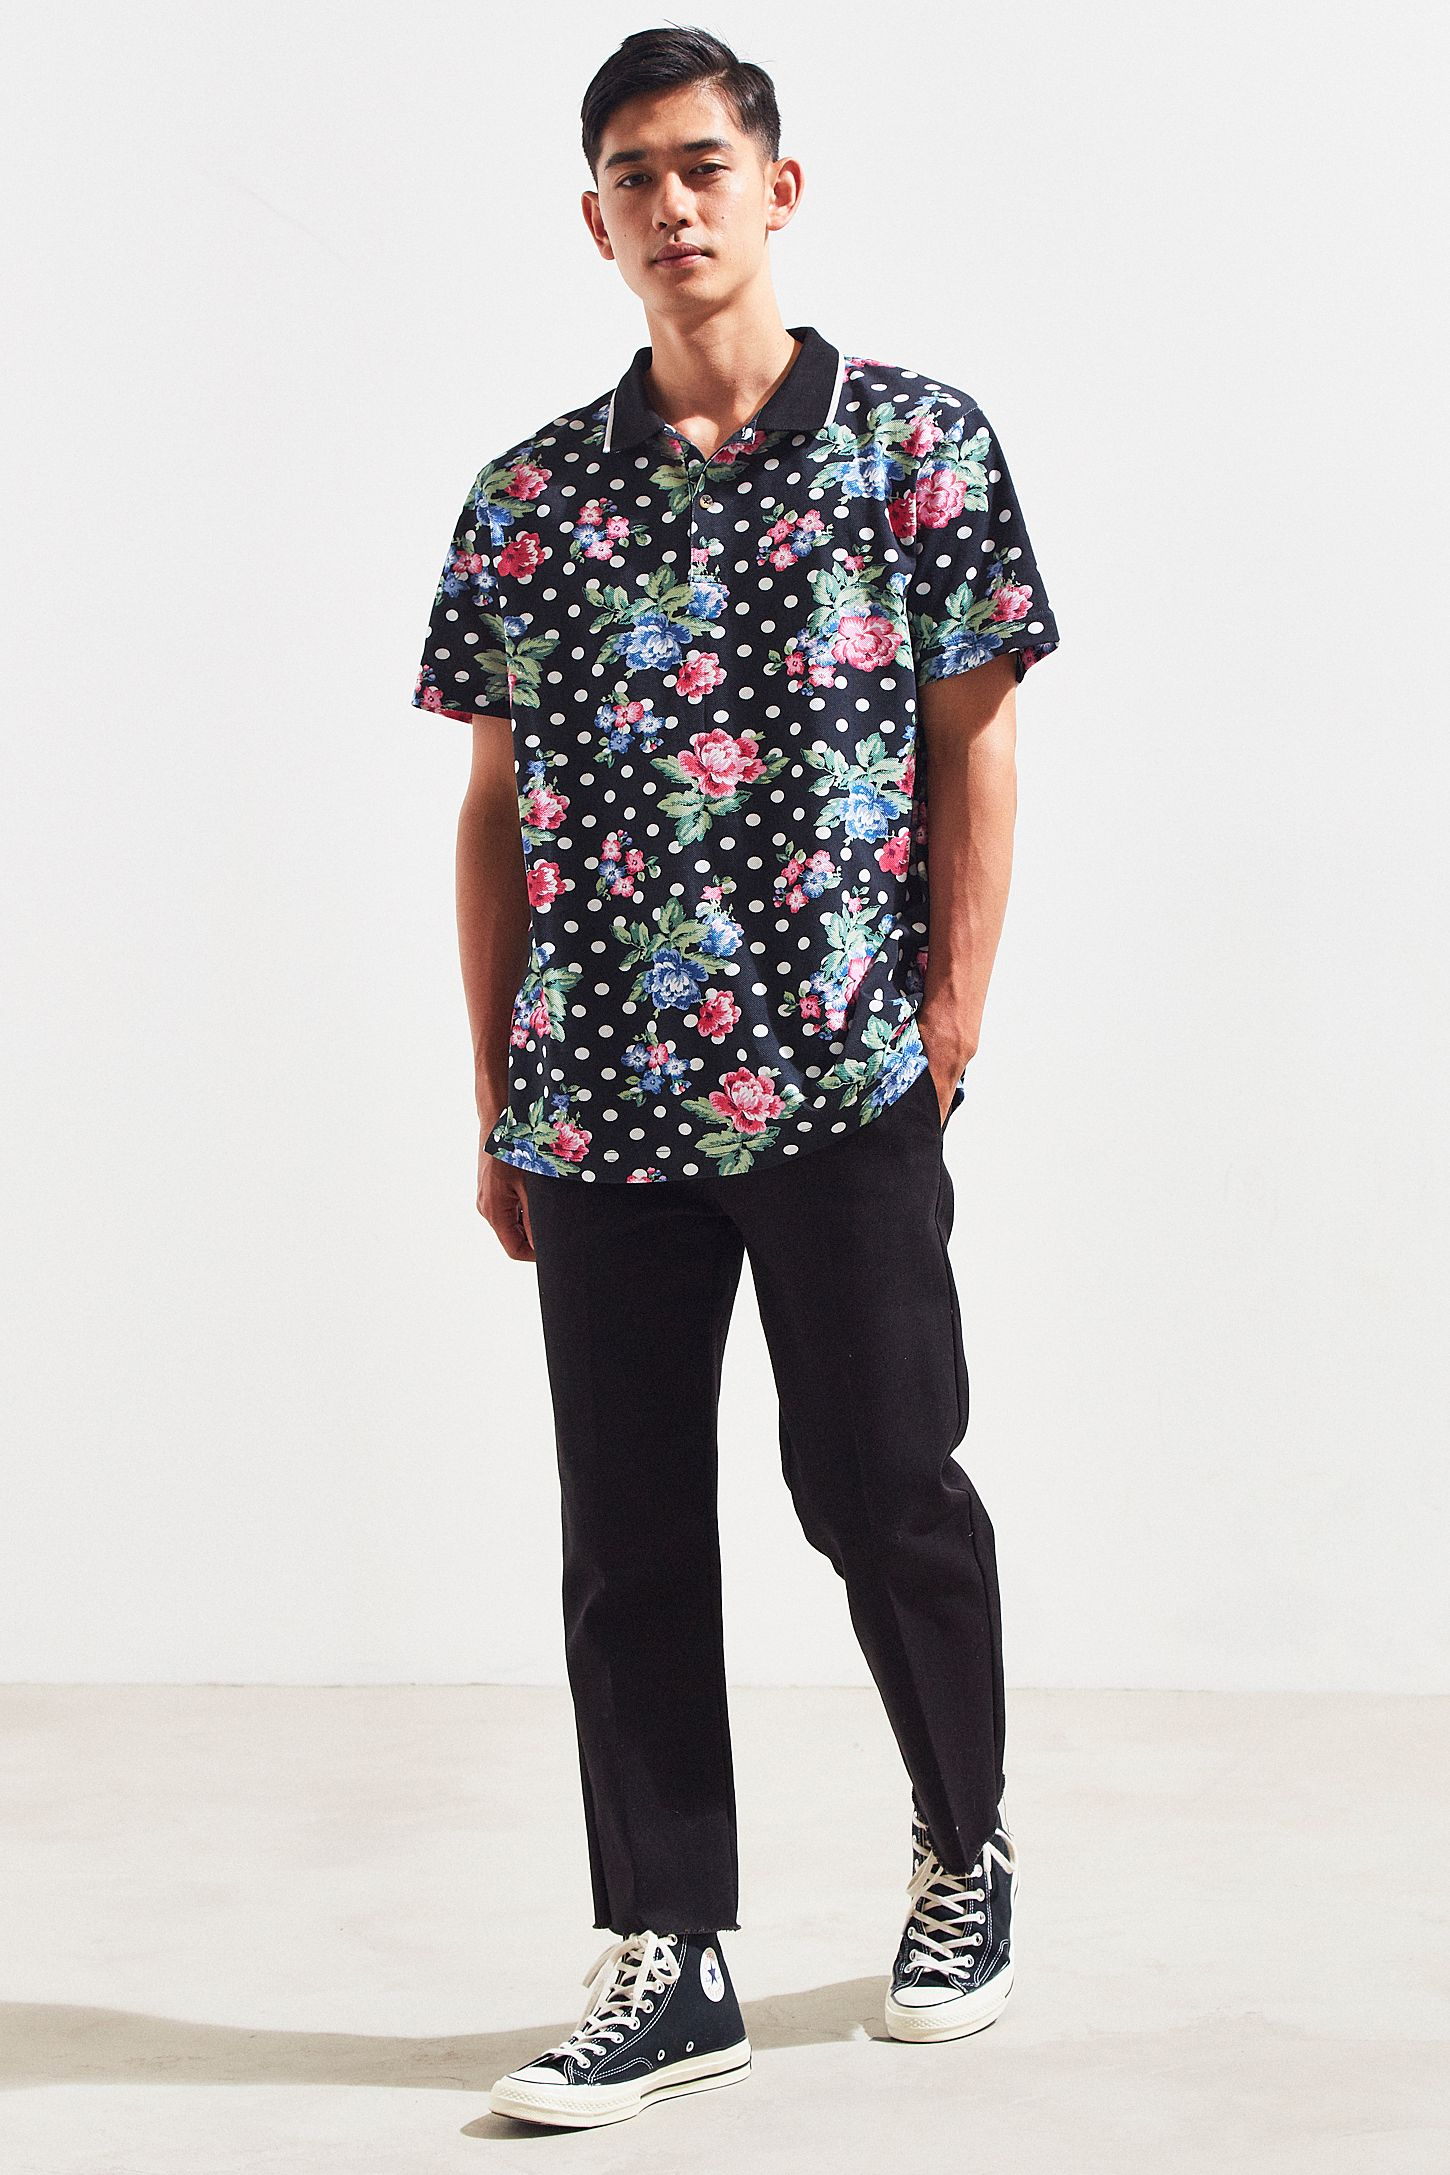 Uo Pique Polo Shirt Urban Outfitters